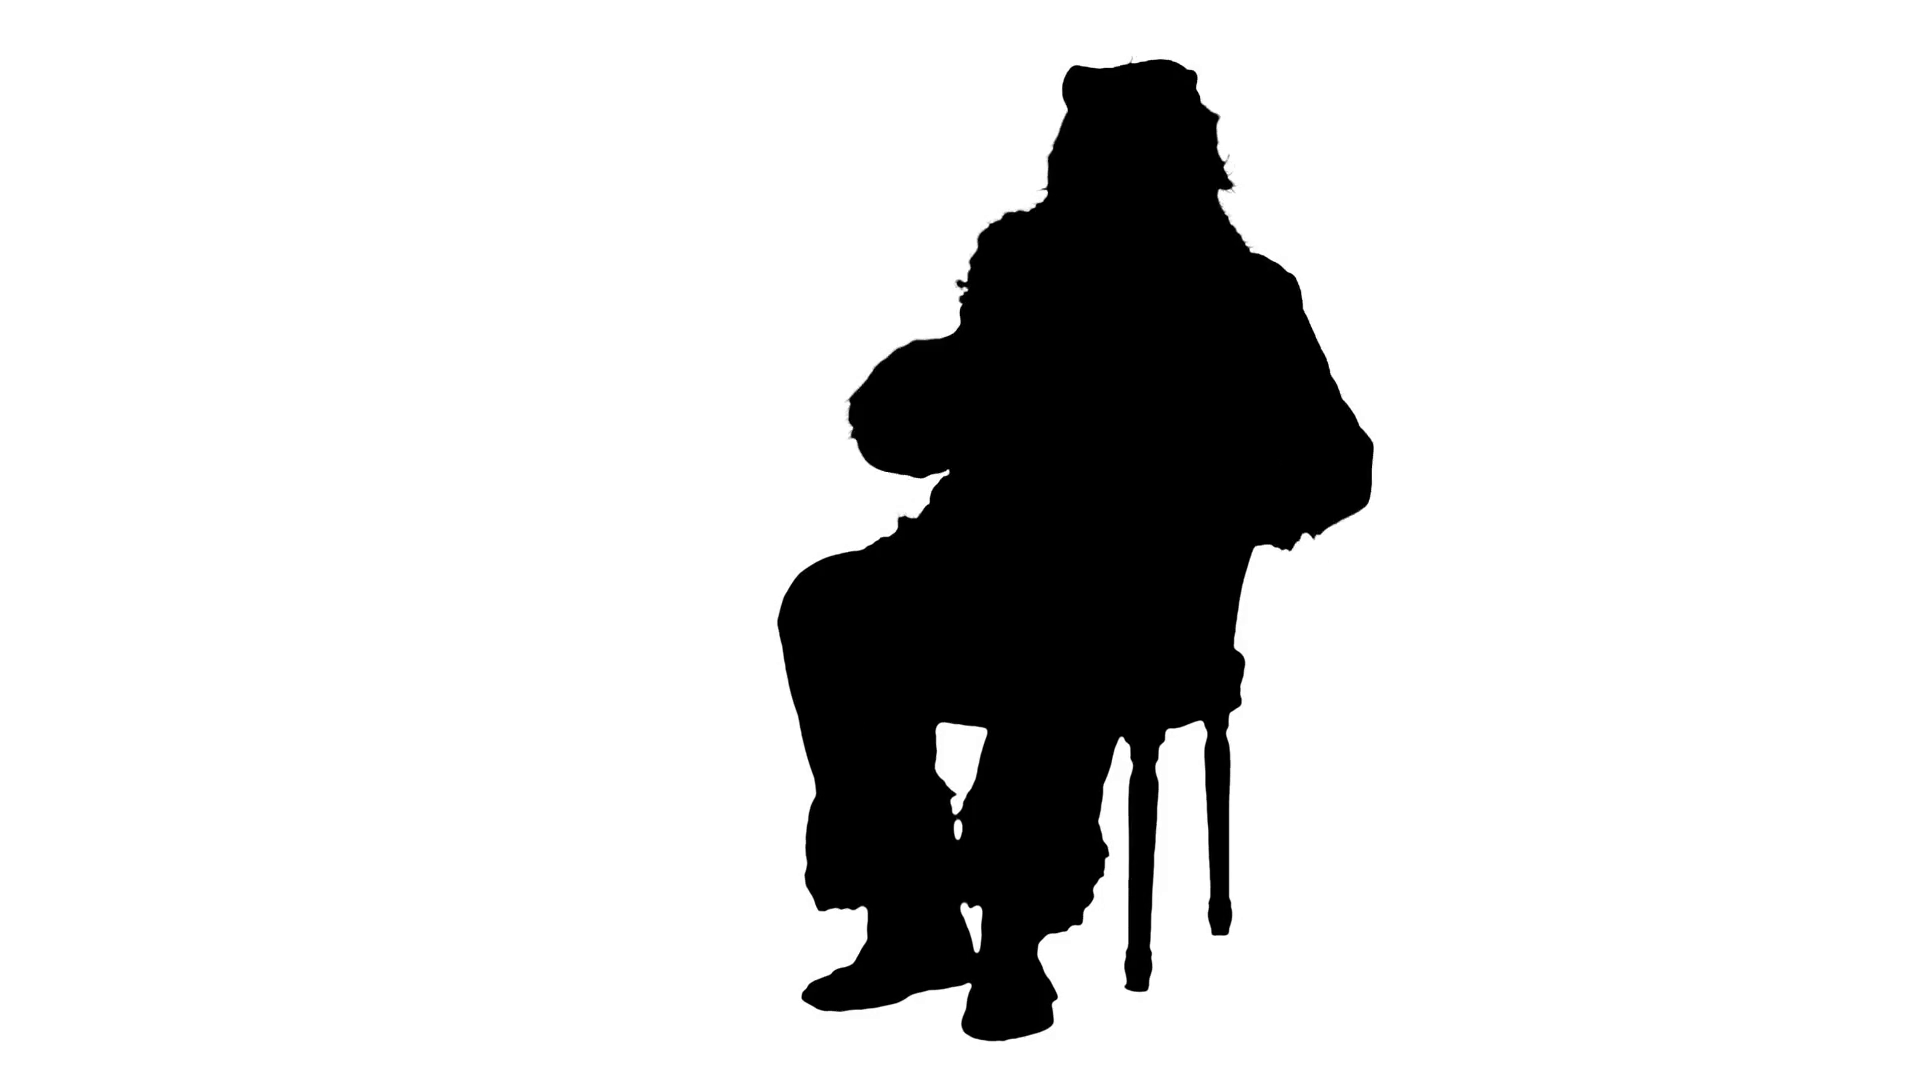 1920x1080 Silhouette Santa Claus Sitting On Chair With Letters In Hands